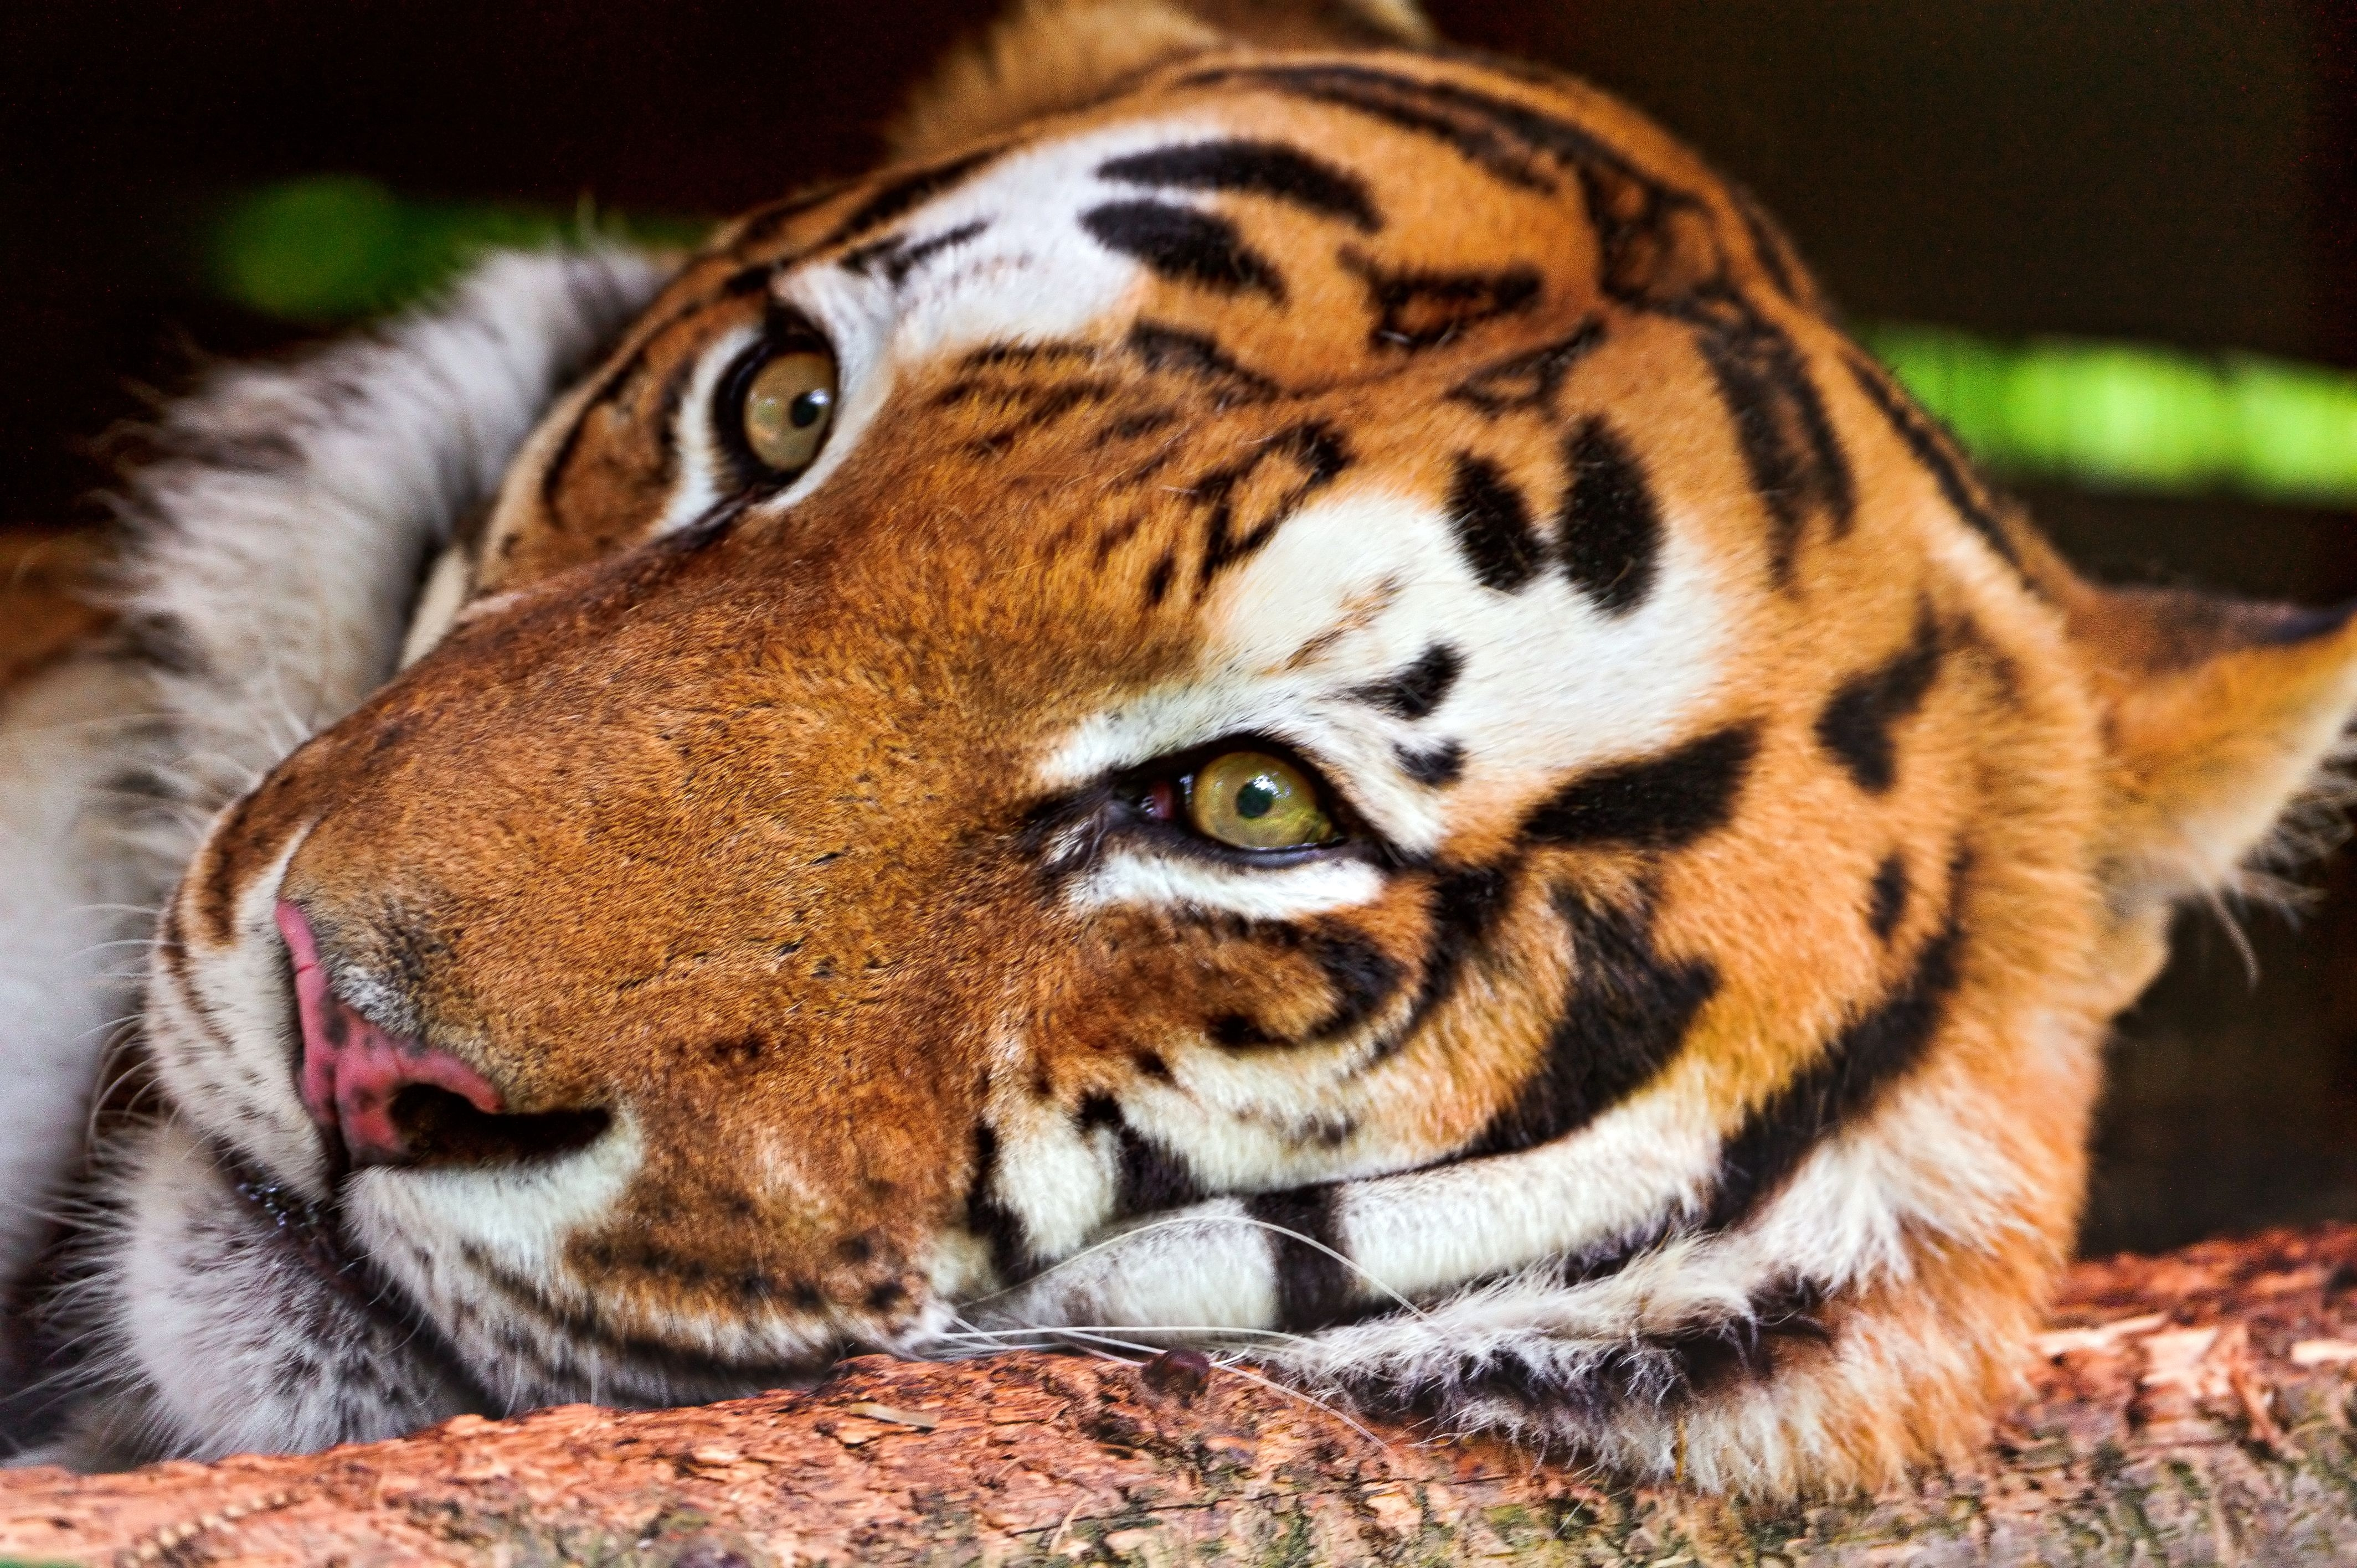 154516 download wallpaper Animals, Tiger, Muzzle, Predator, Big Cat screensavers and pictures for free